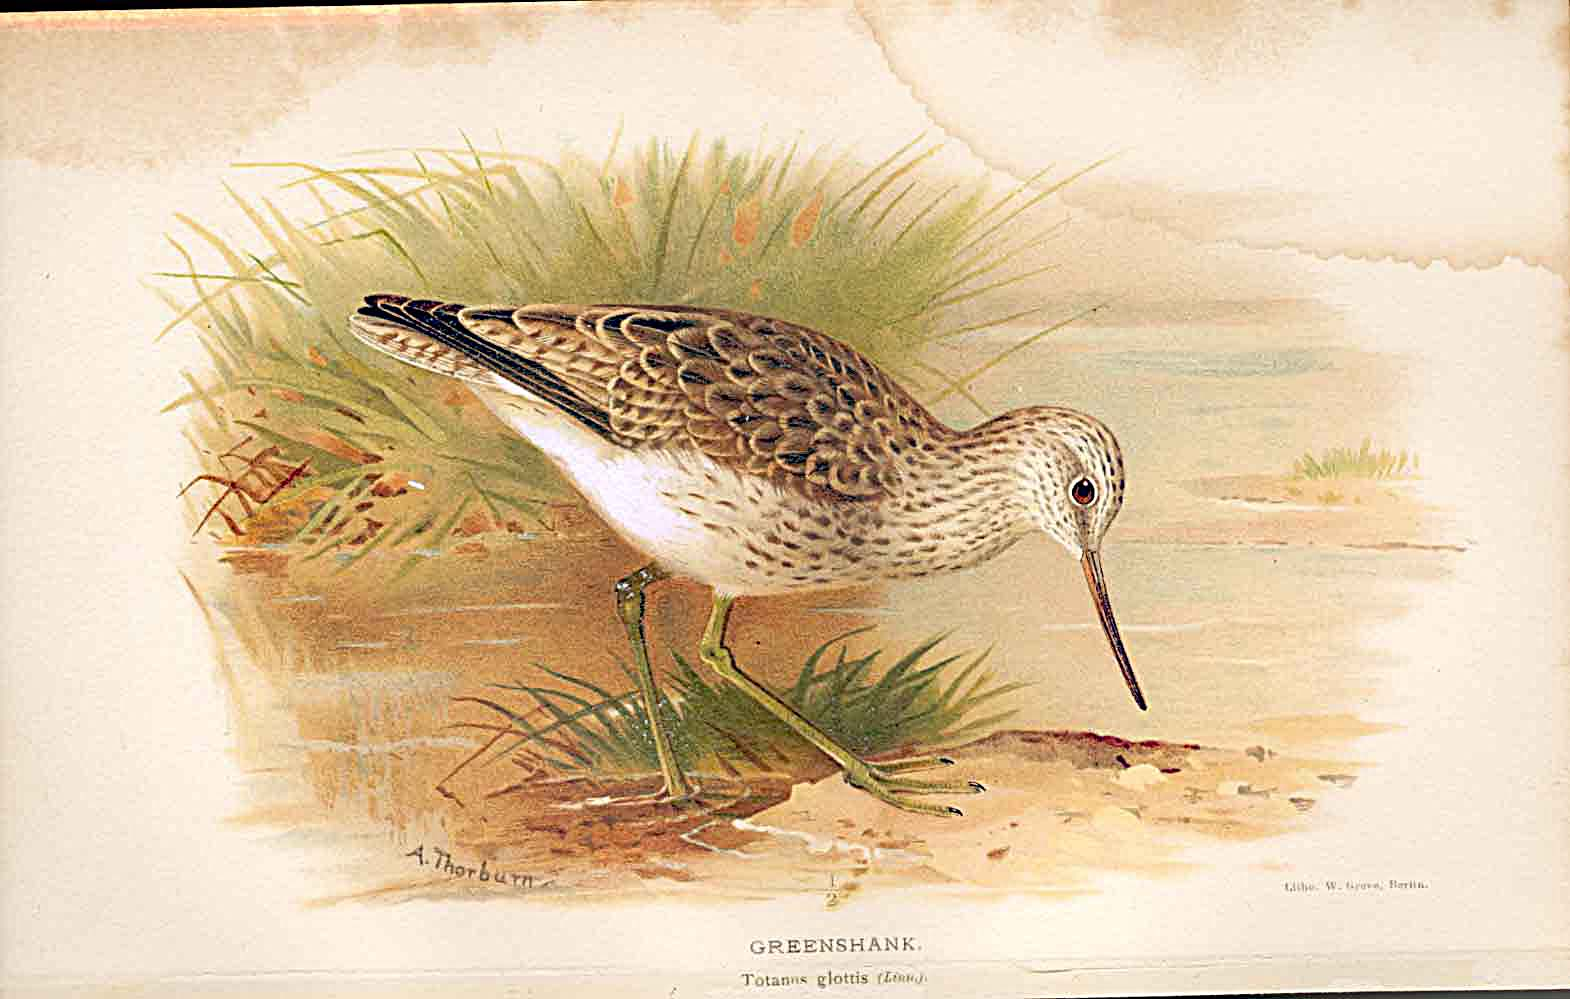 Print Greenshank Lilfords Birds 1885-97 By A Thorburn 539011 Old Original